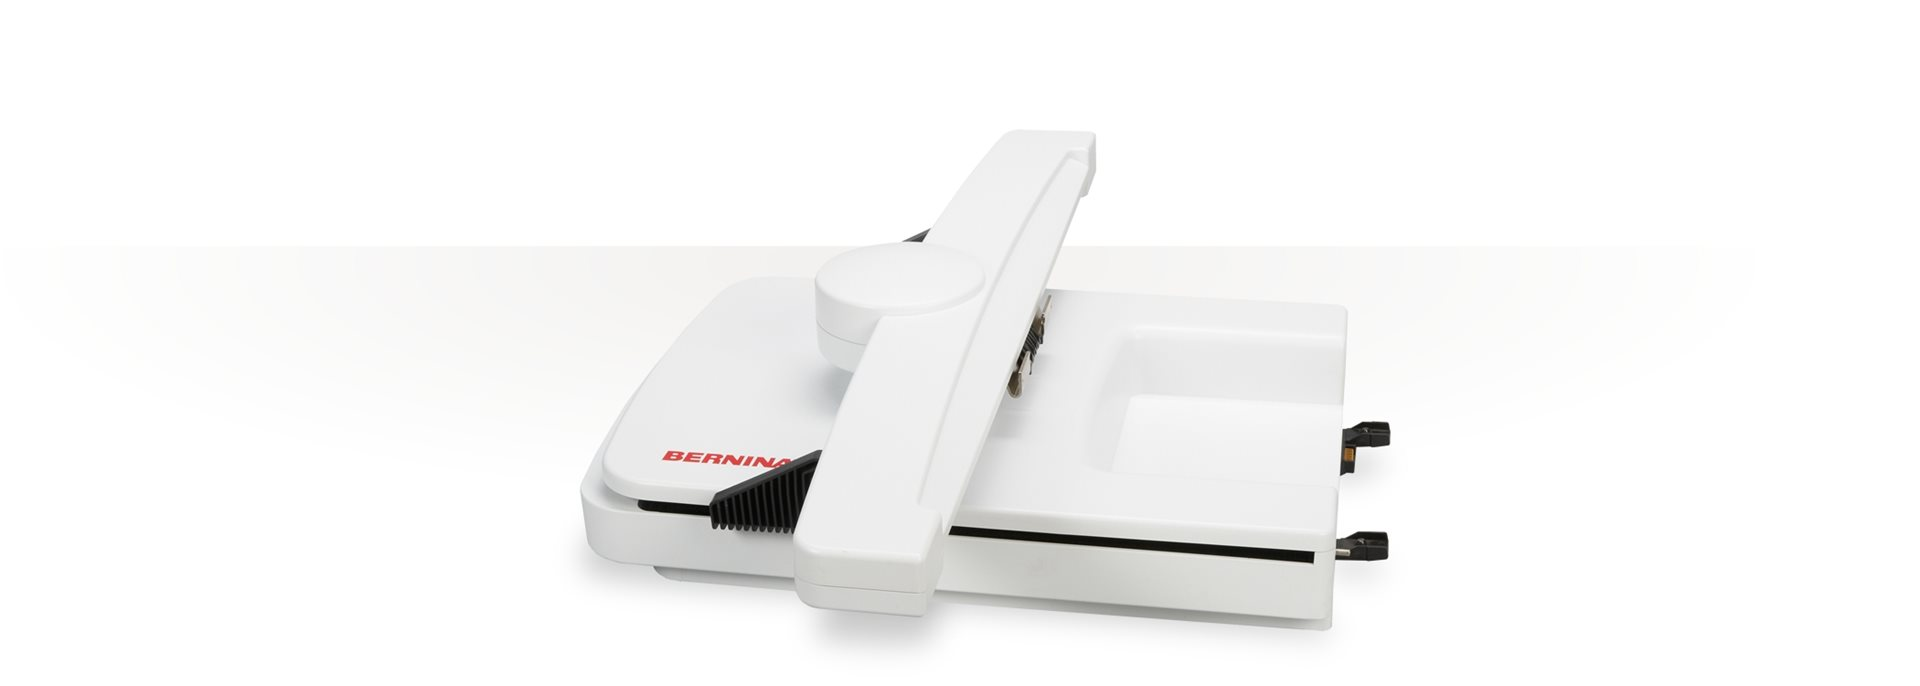 BERNINA Special accessories for embroidery machines